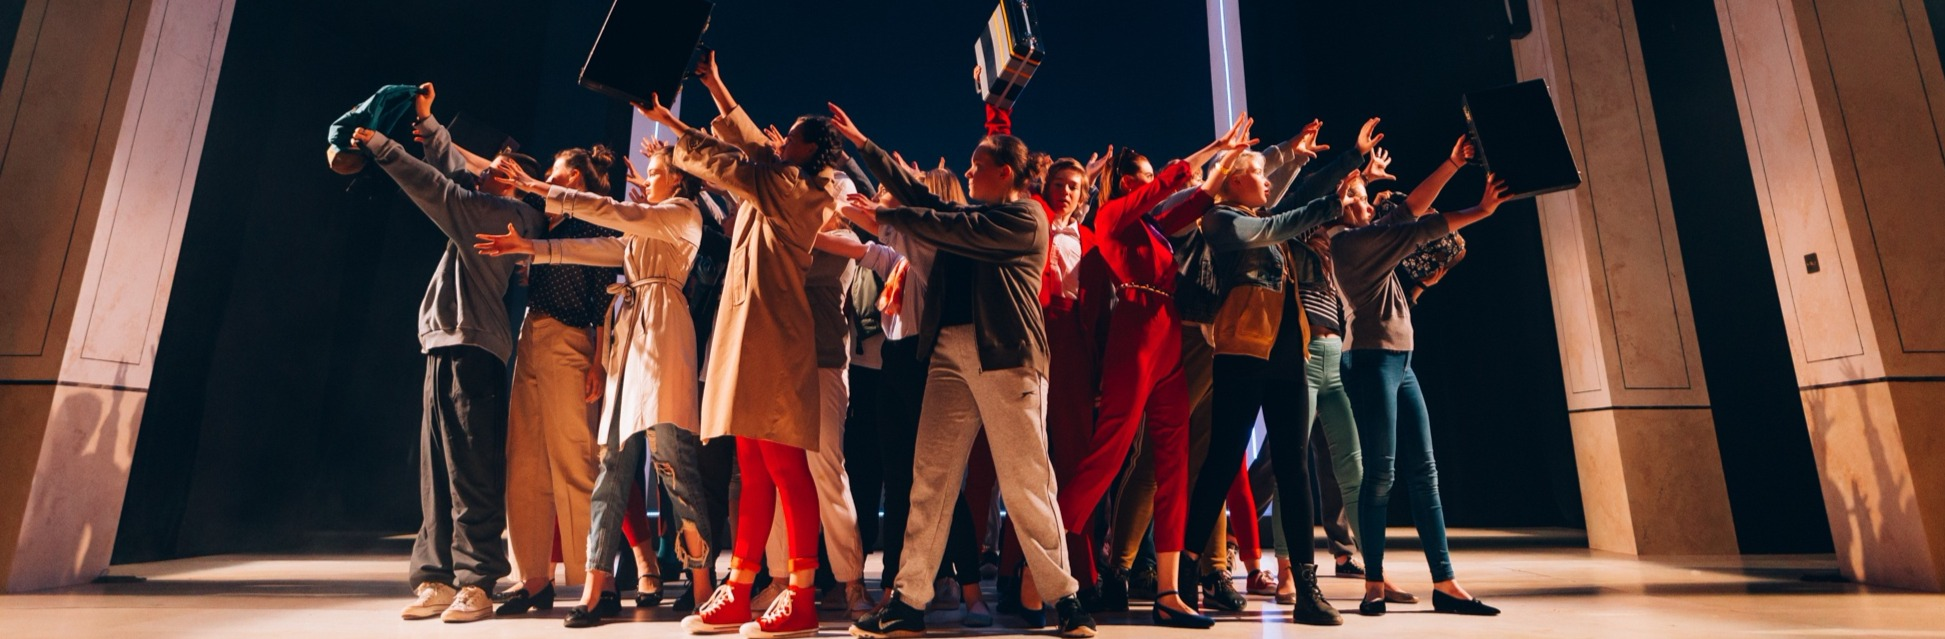 An image of the Youth Theatre production SUCCESS by Nick Drake showing the cast holding their arms upwards, some holding briefcases.